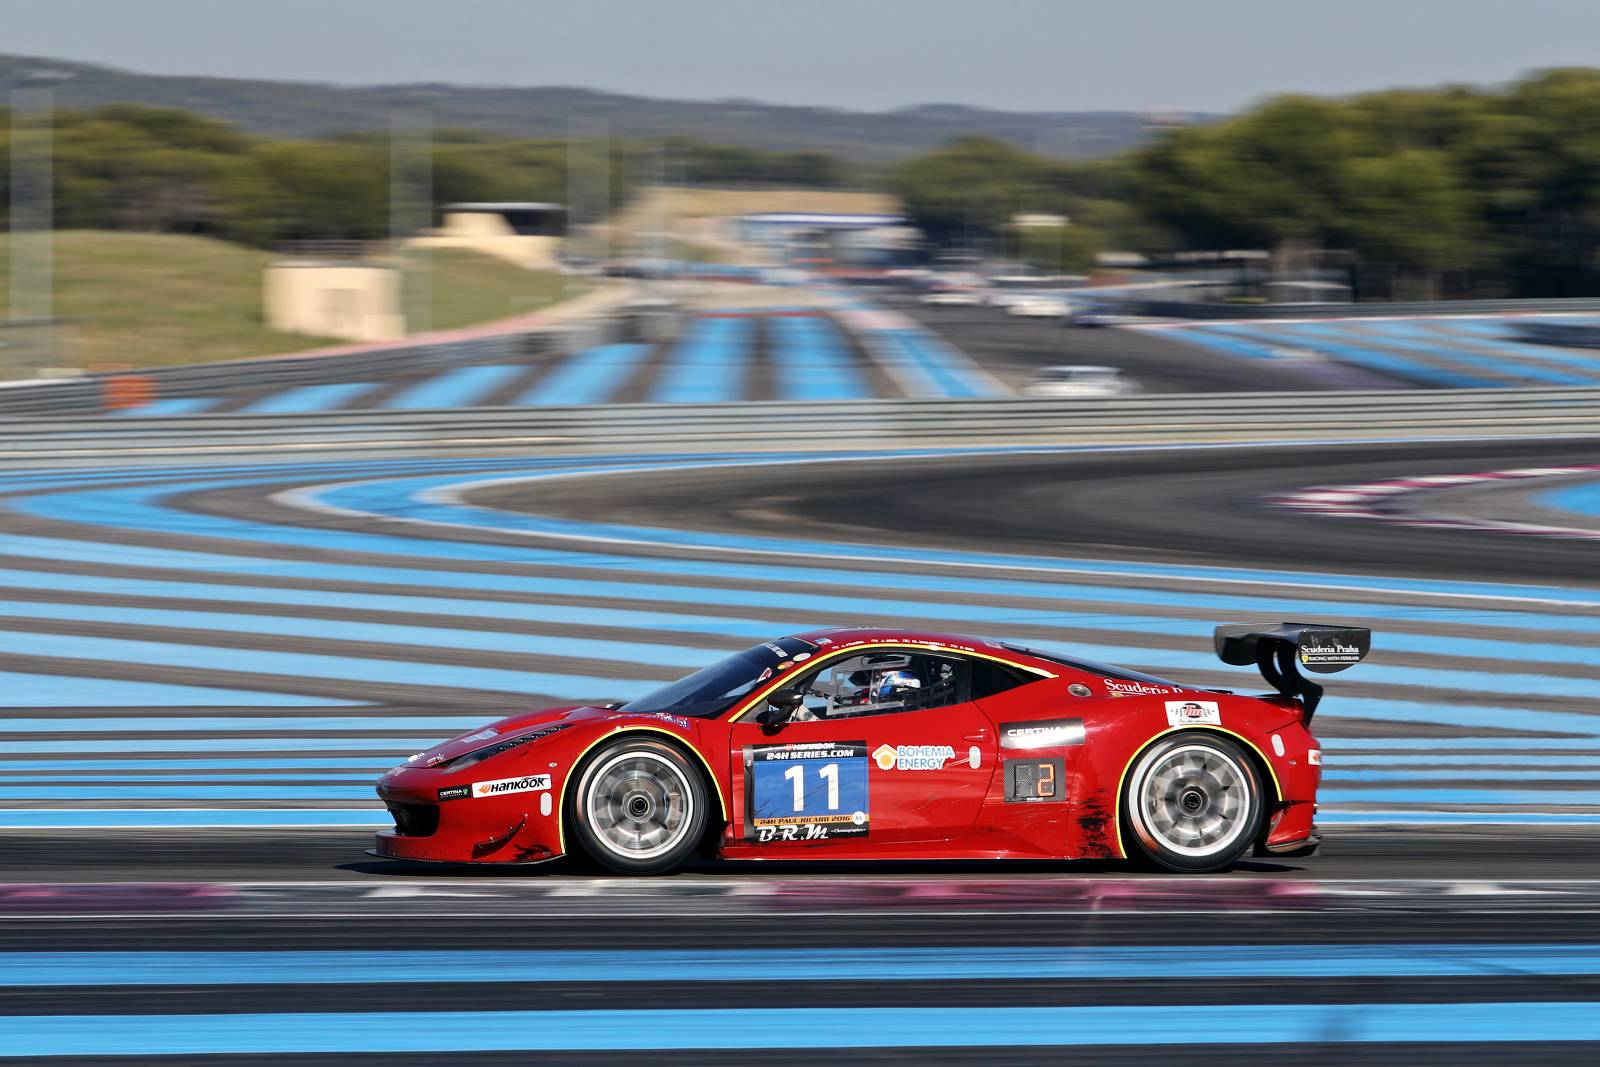 peter-kox-24h-paul-ricard-2016-011